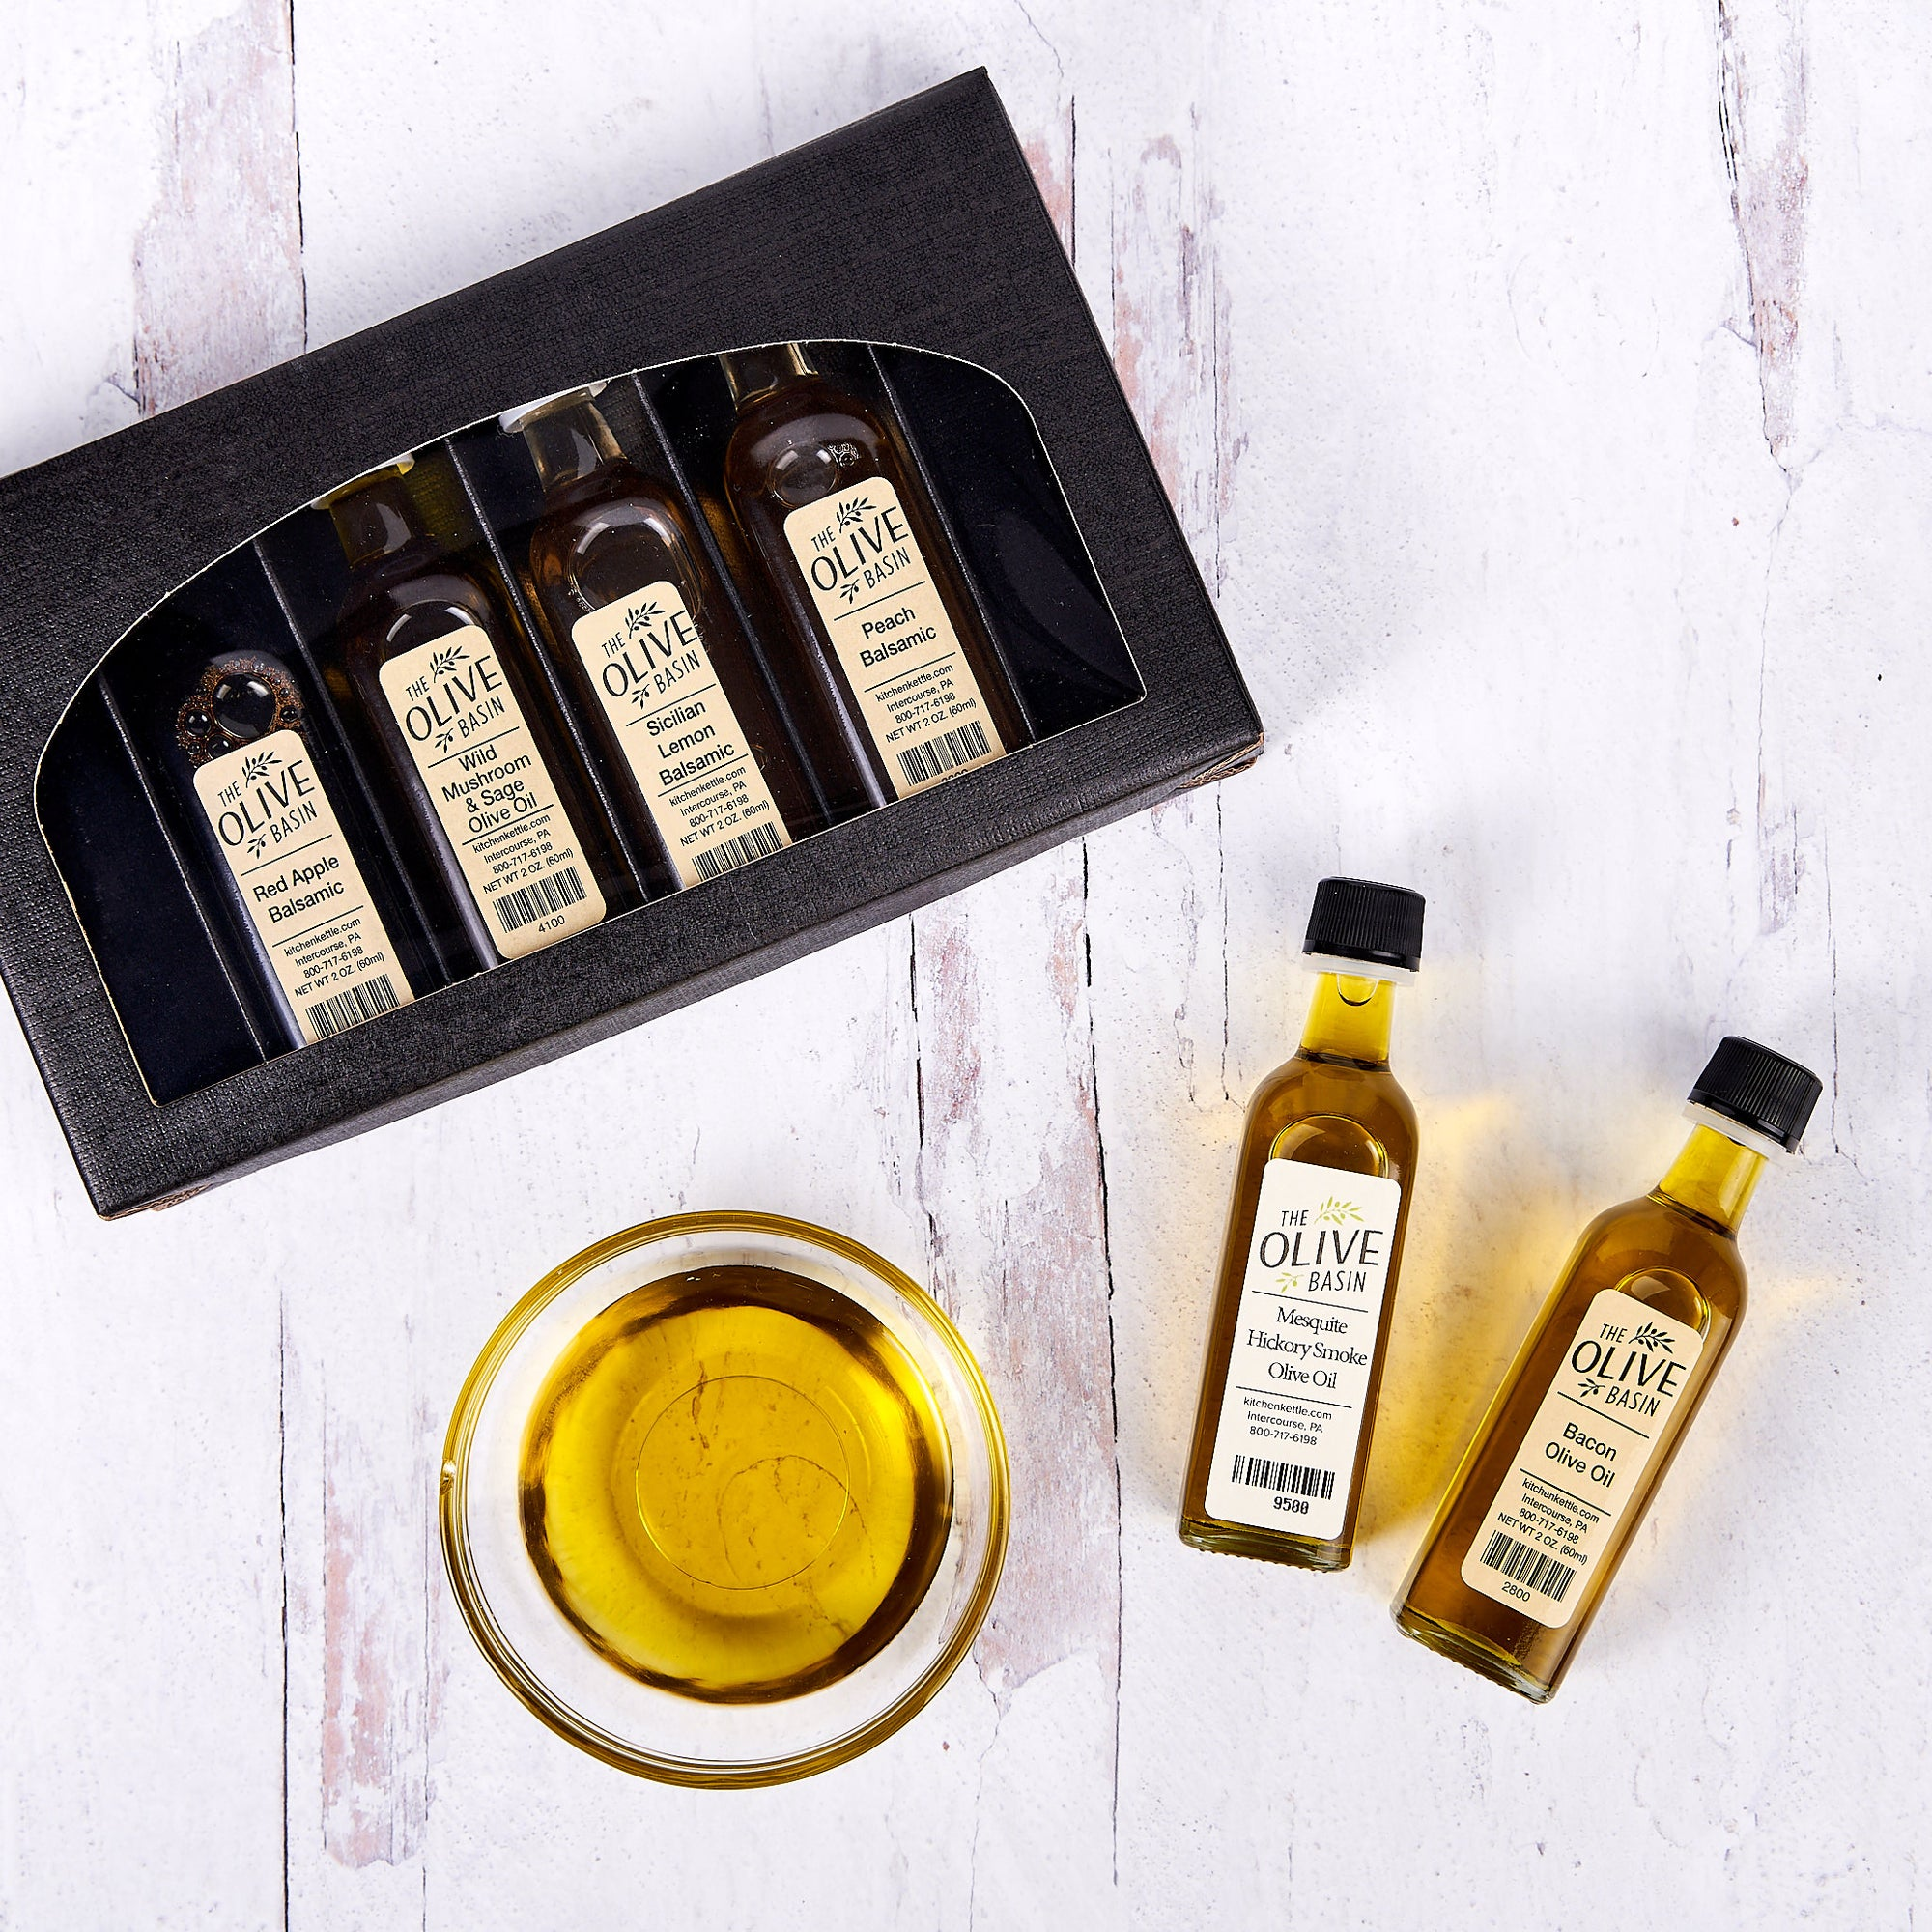 The Oil & Vinegar Grilling Collection